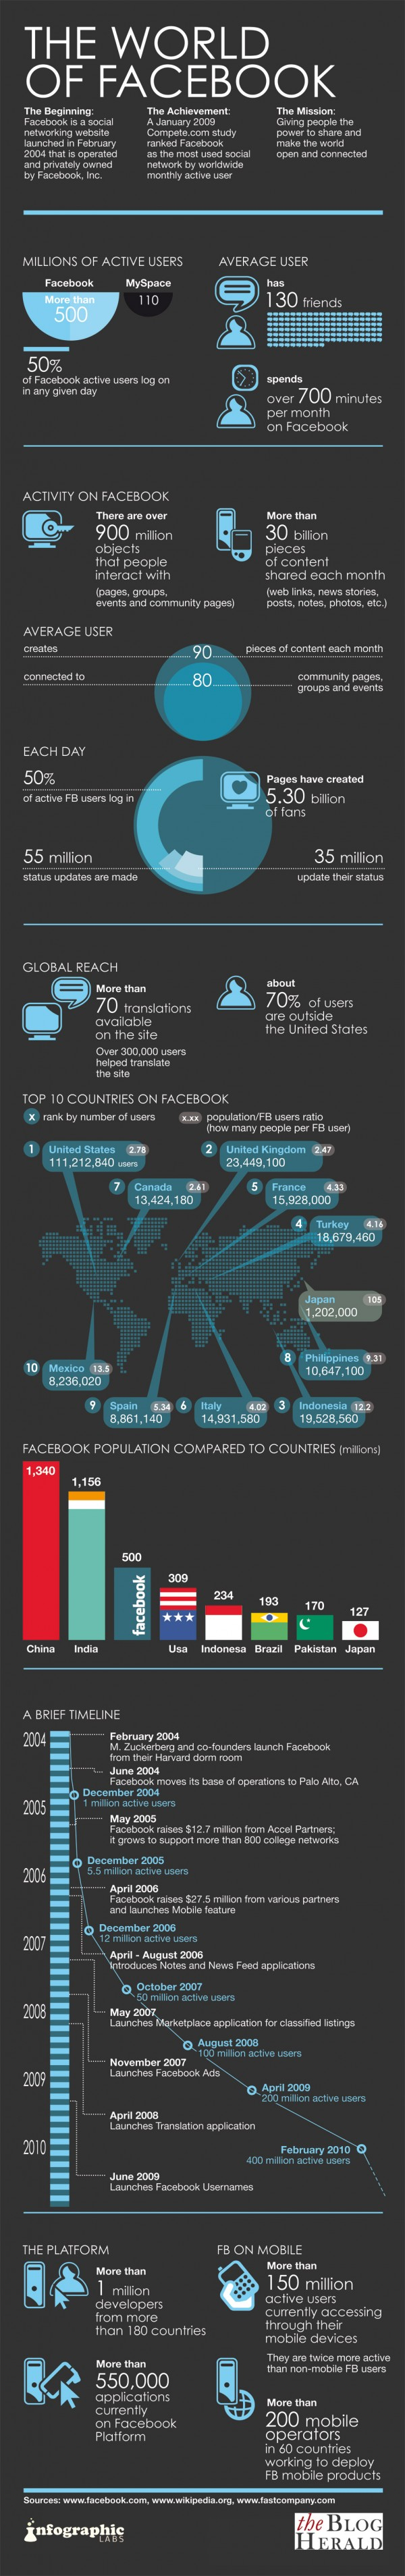 Facebook Statistics: View by country, popularity and general numbers infographic